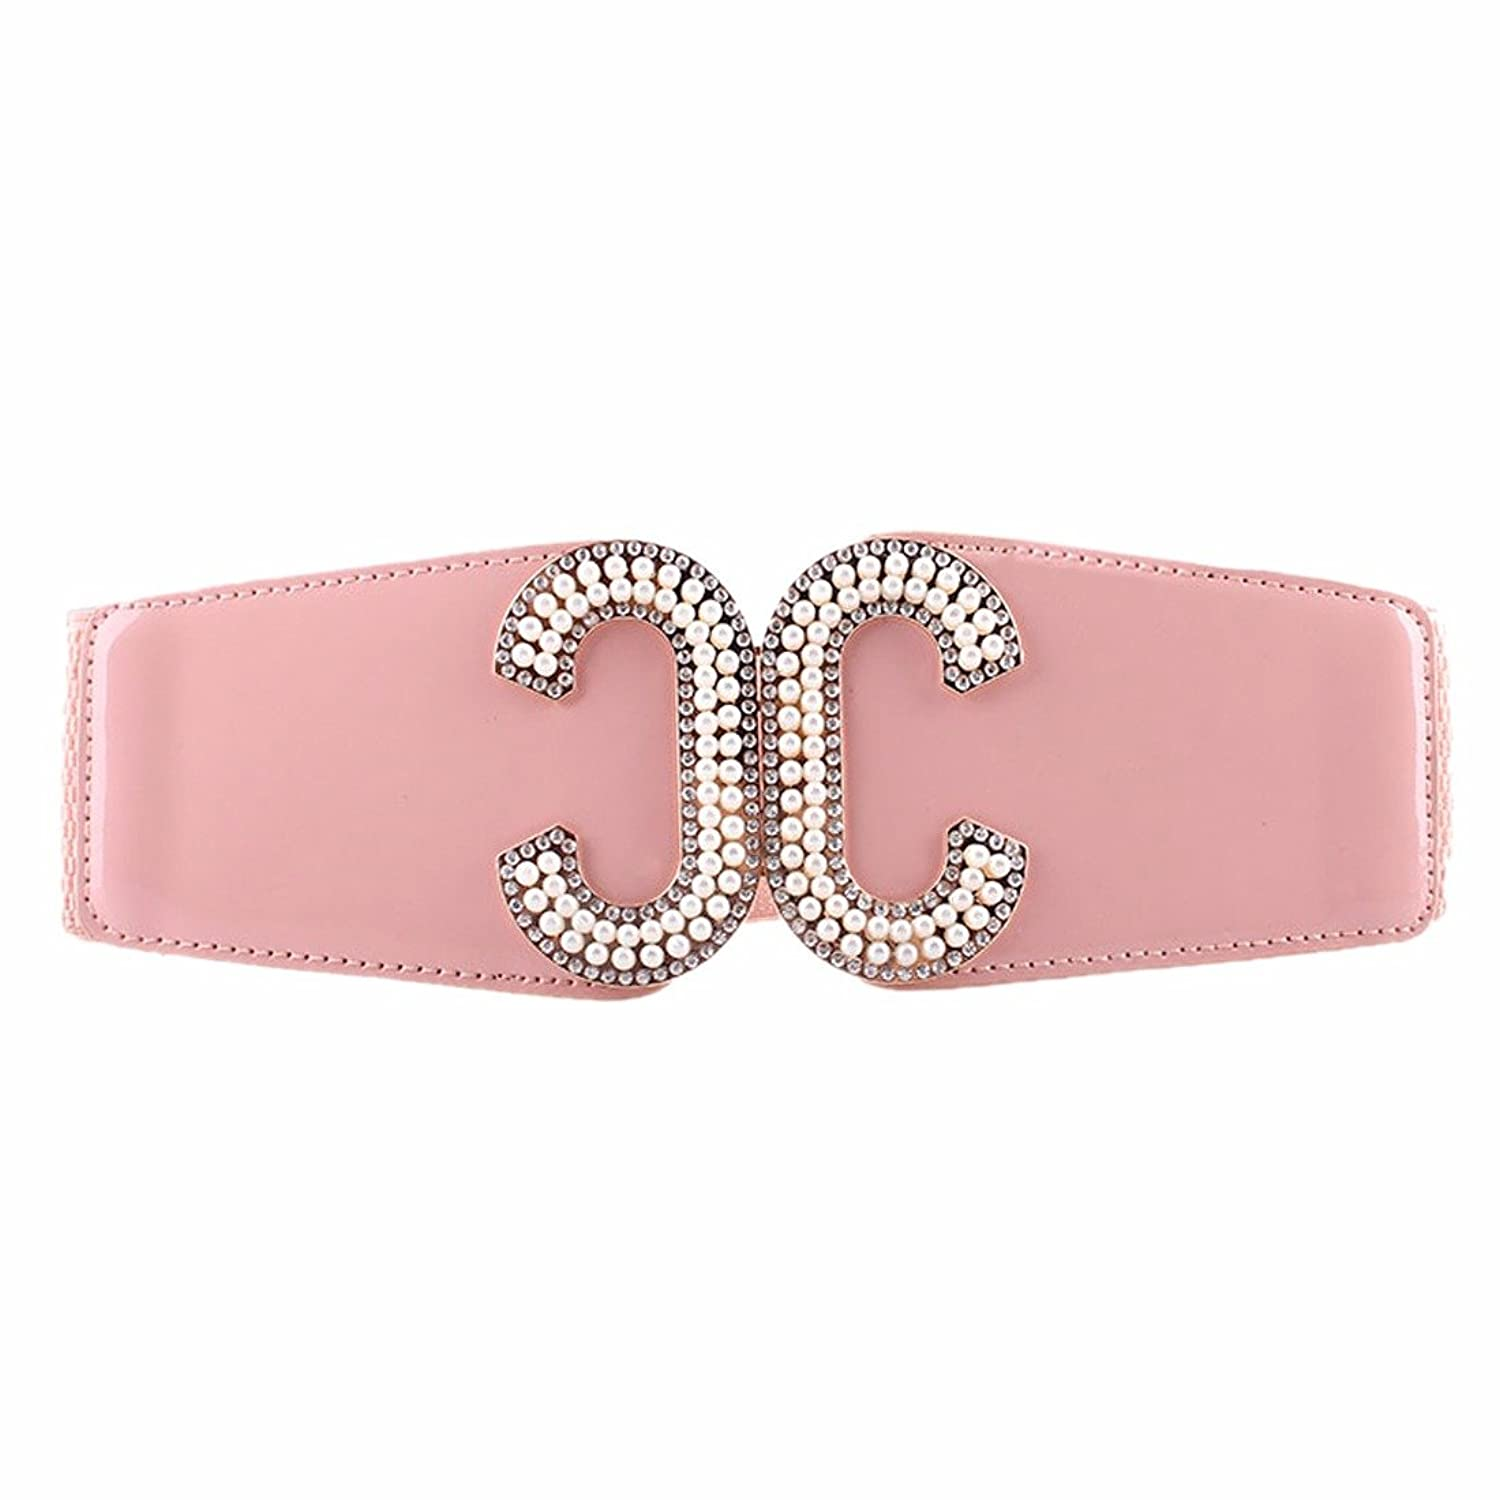 Elastic Palace Waist Belt Girdle Korea Girl New Double C Buckle Pearl Waistband